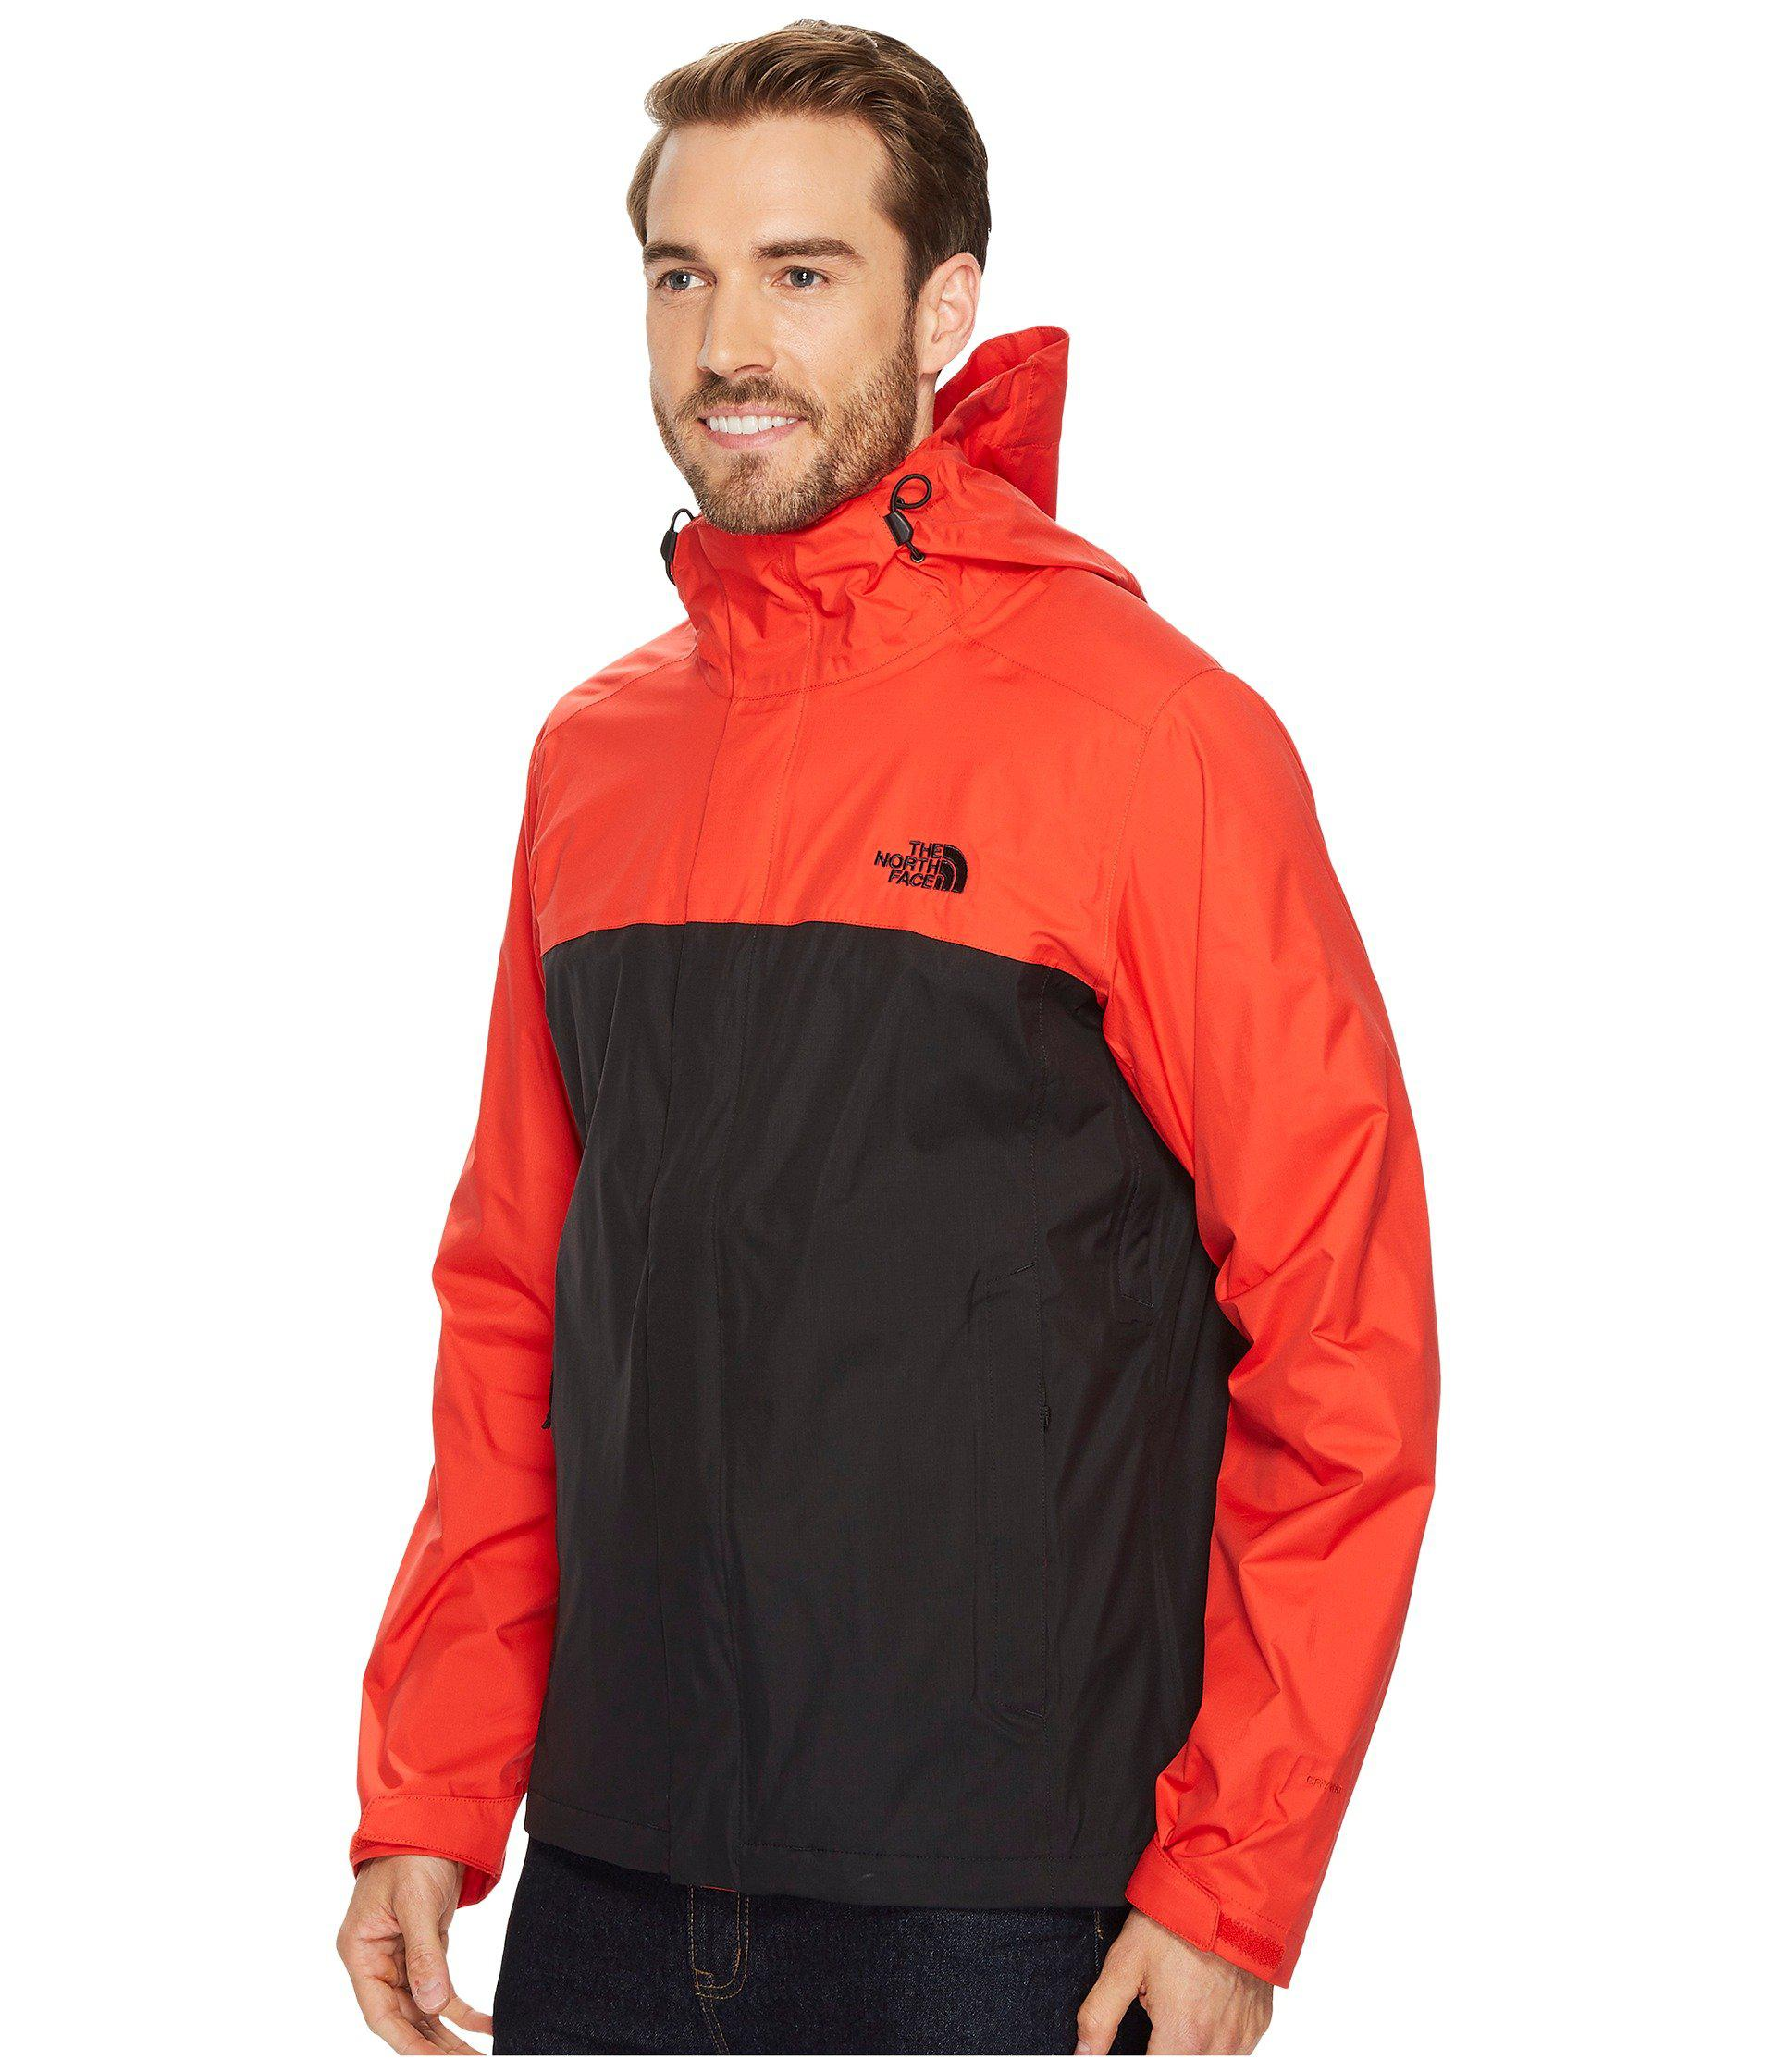 ab97fcde7 low cost north face venture jacket orange 65dbe 6783a